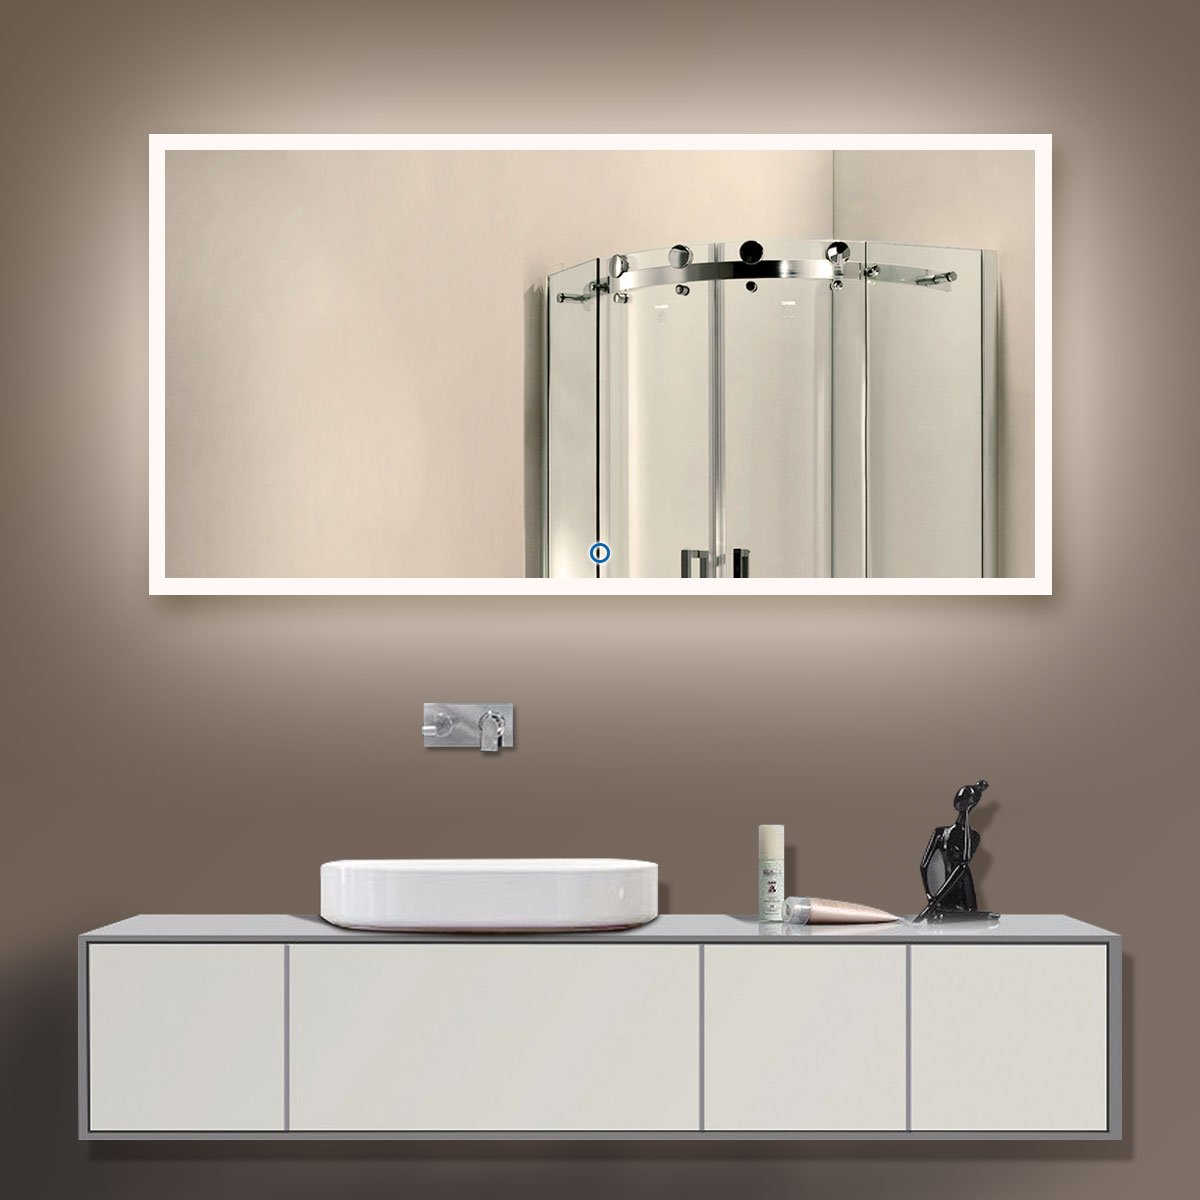 5628 in LED Decorative Bathroom Silvered Mirror/Touch Button(D-N031-D)